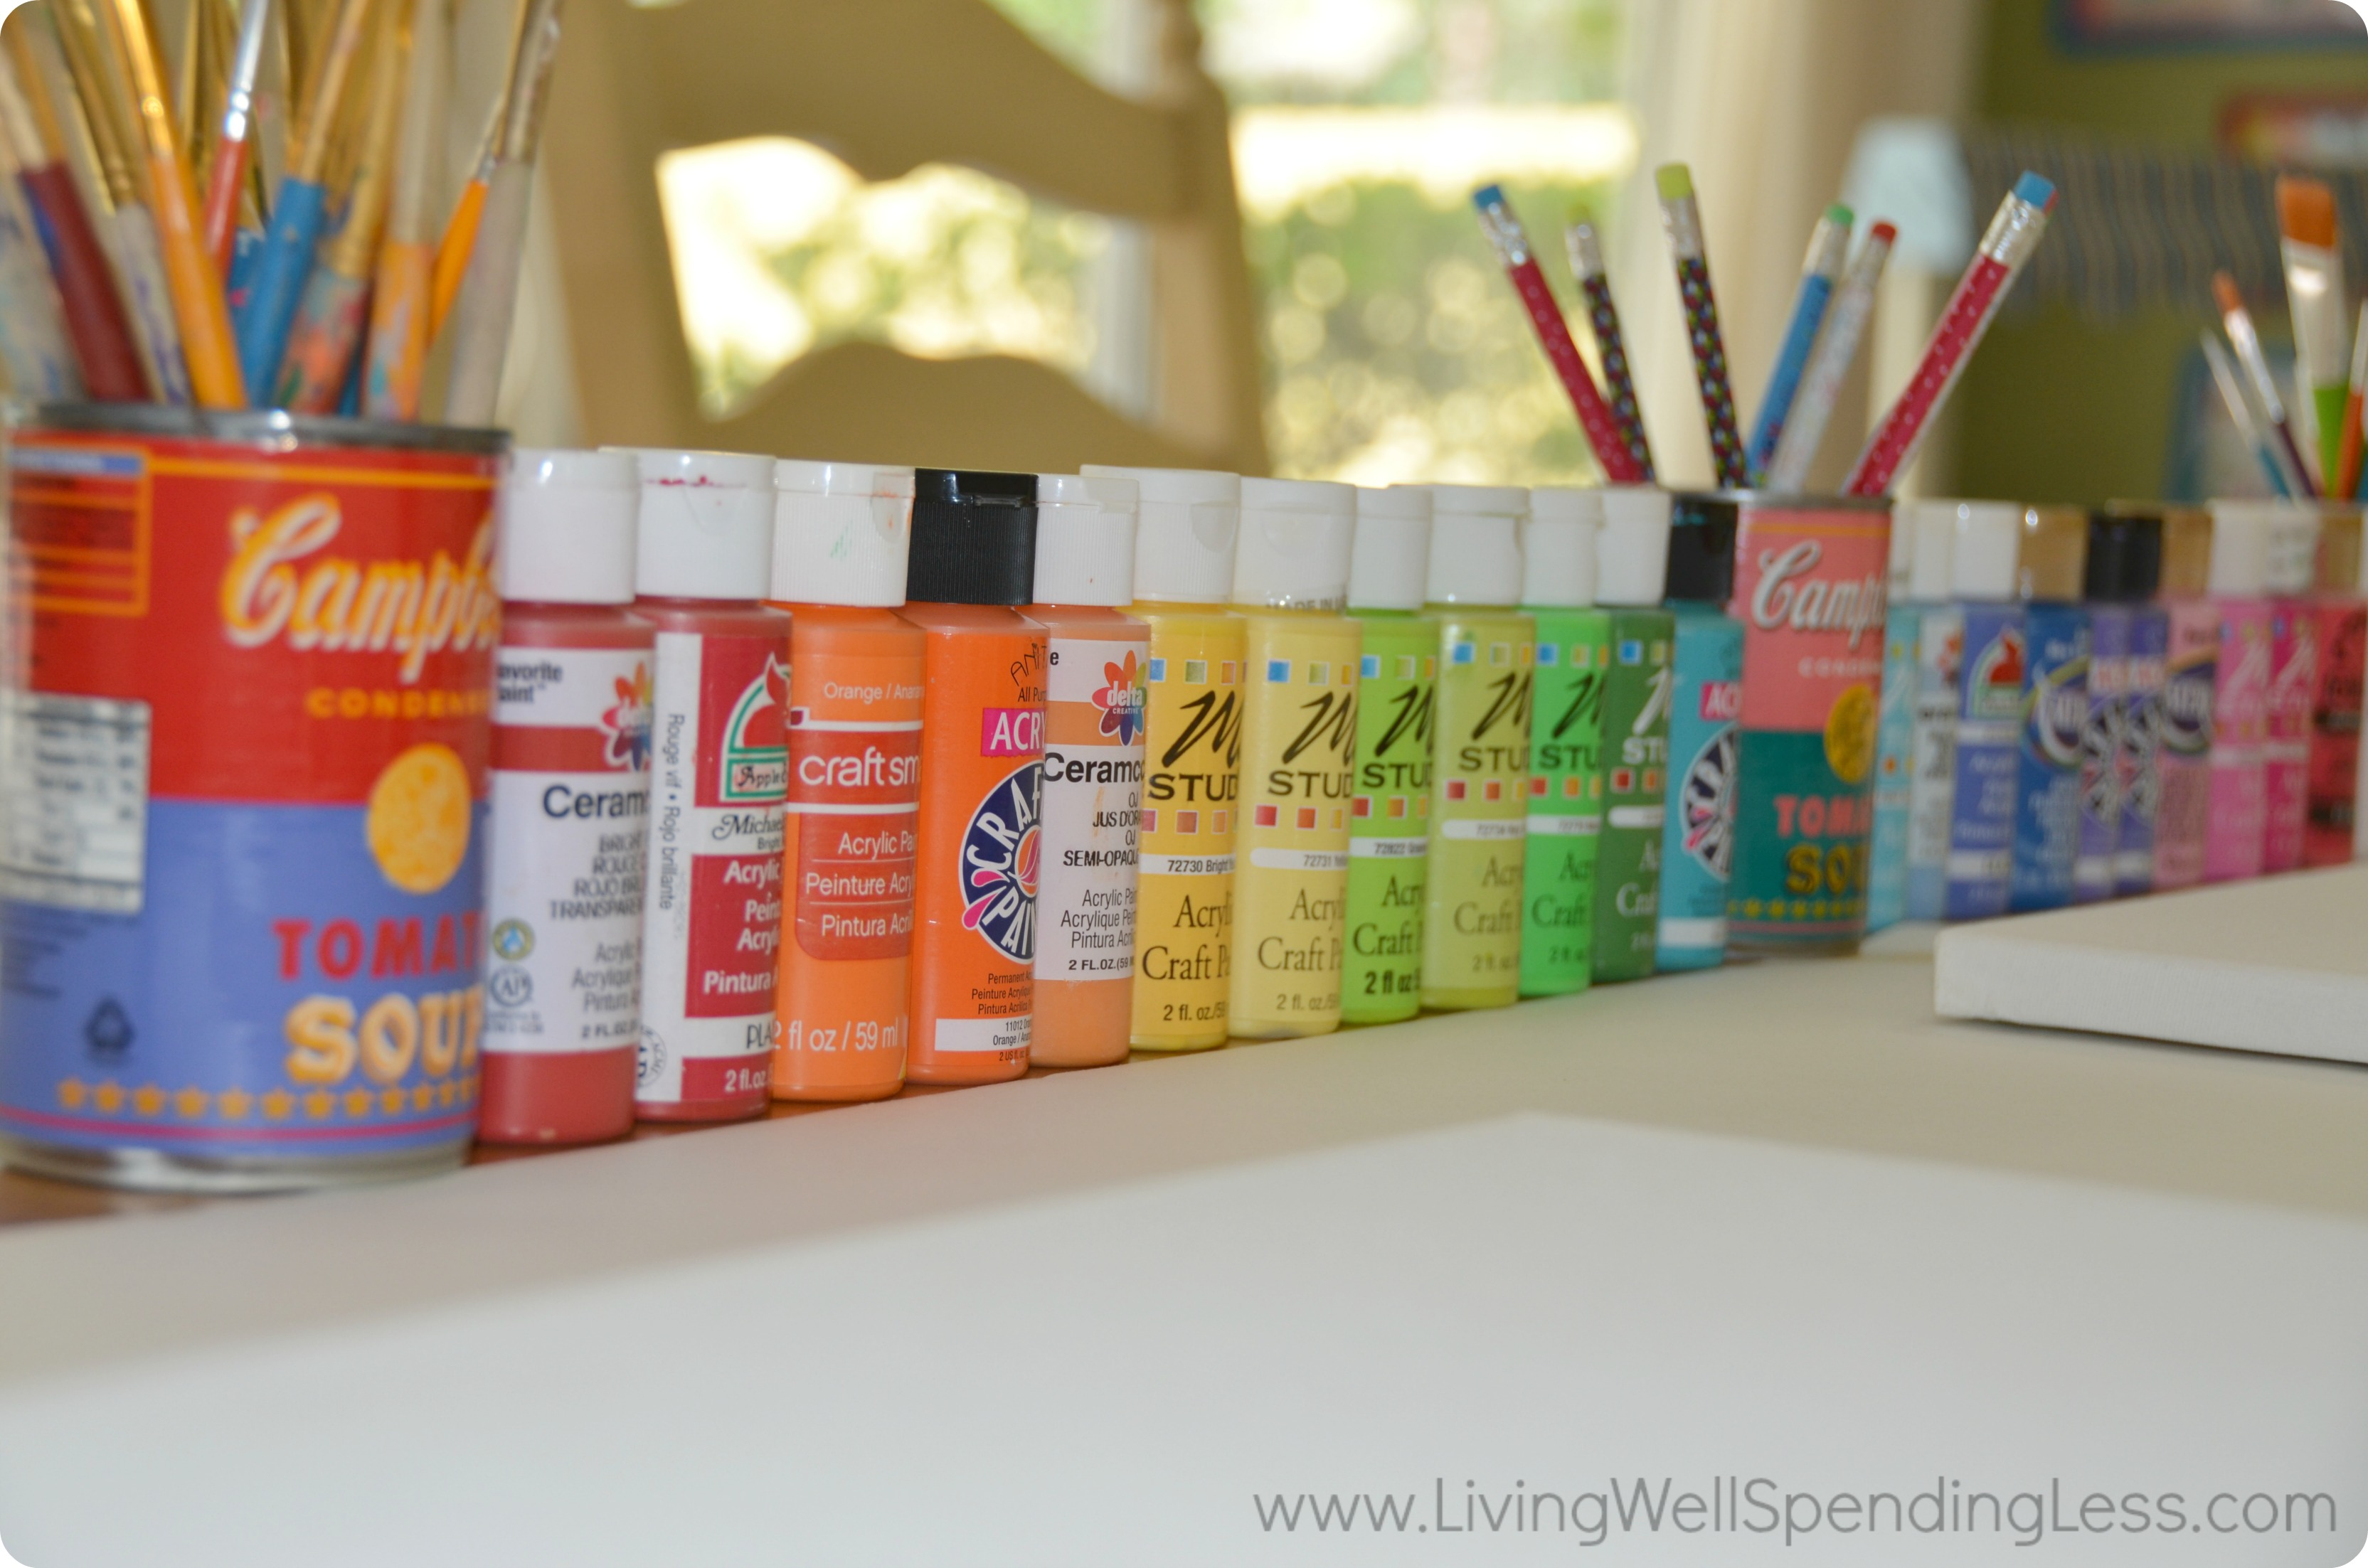 Have an assortment of acrylic paints and paint brushes available to use.